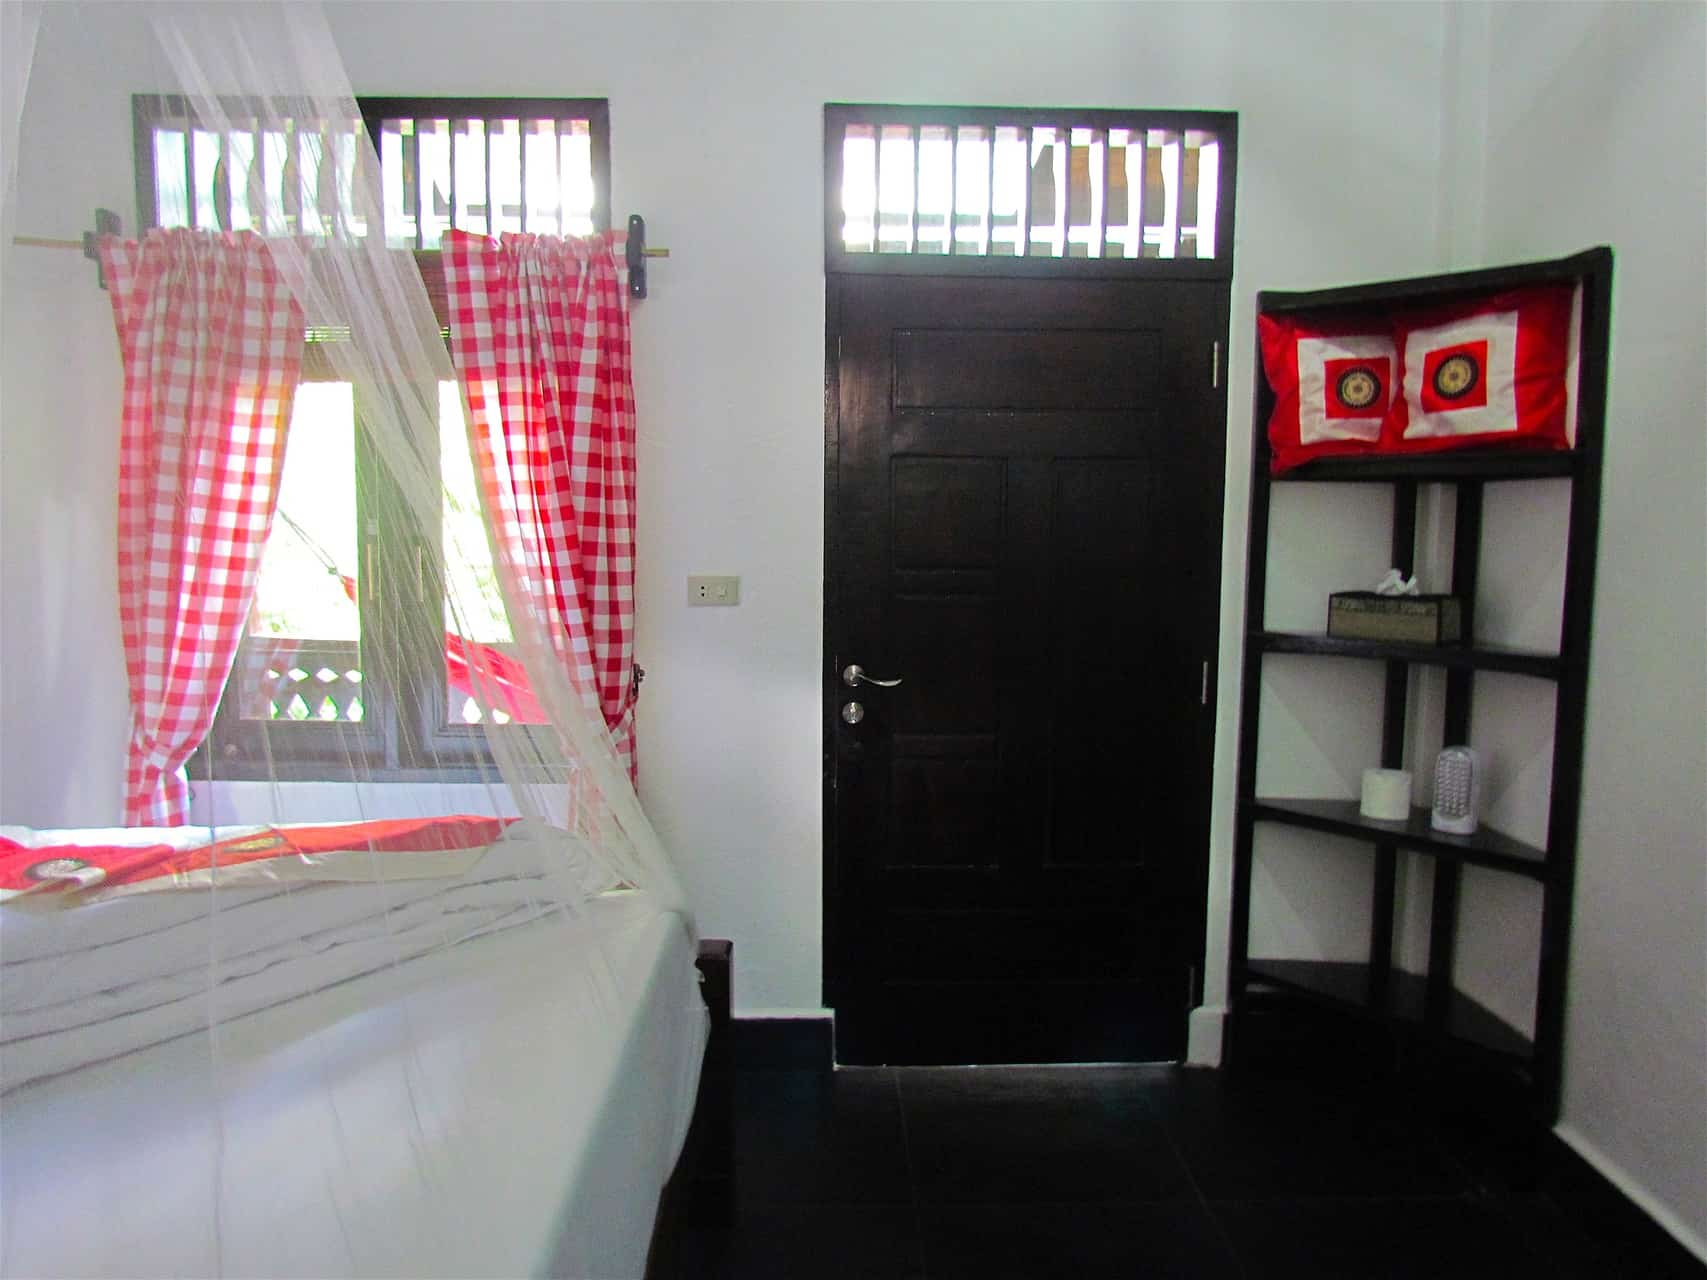 BUDGET ROOM IN BUKIT LAWANG - BATAK ROOM AT ECOTRAVEL COTTAGES - SUMATRA ECOTRAVEL